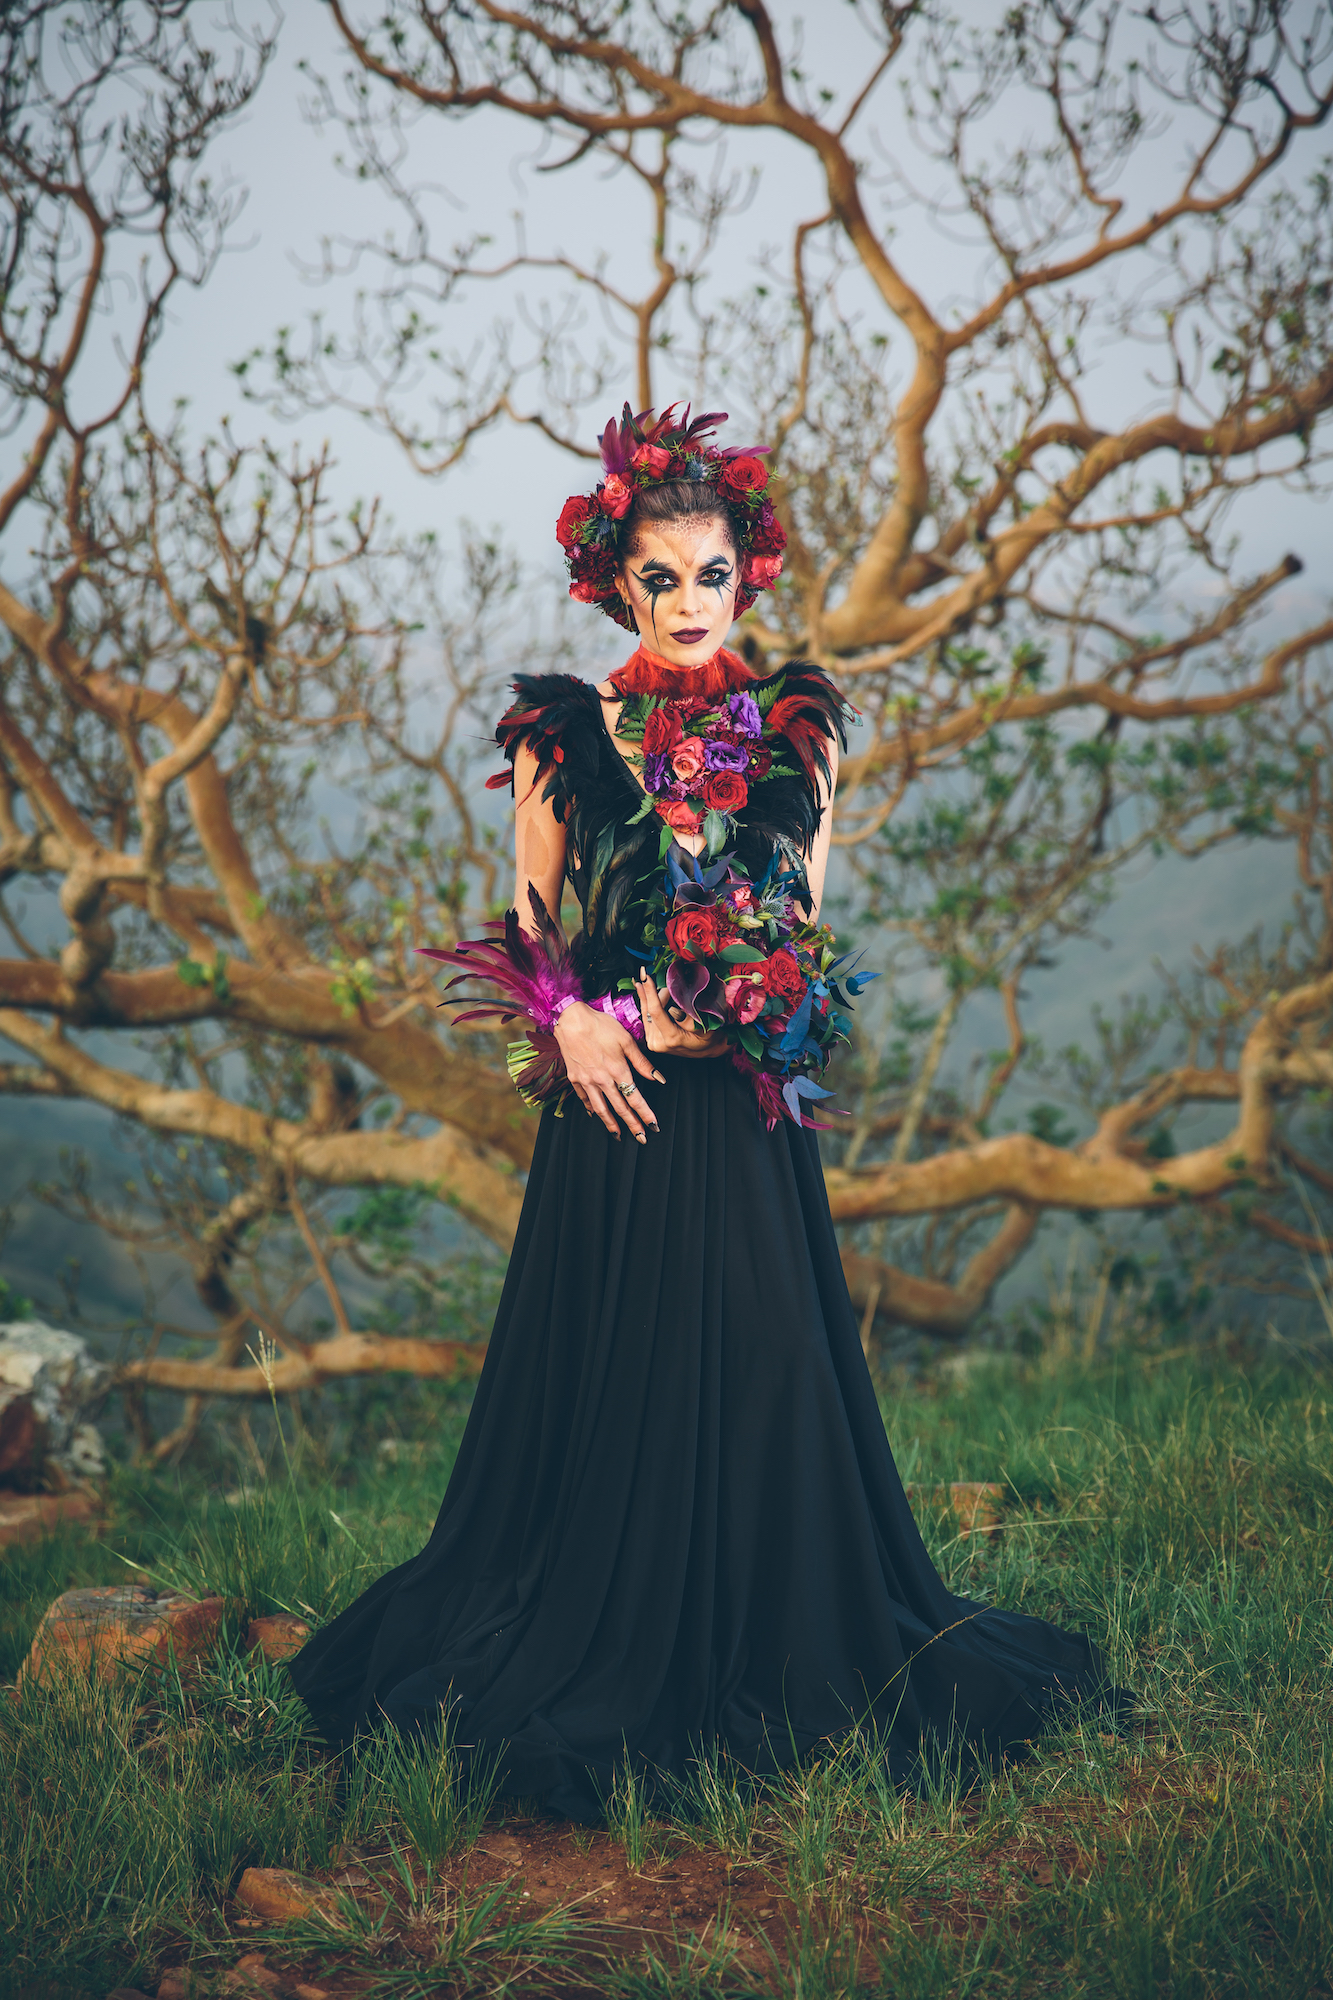 black wedding dress flowers feathers dramatic makeup halloween bride styled shoot